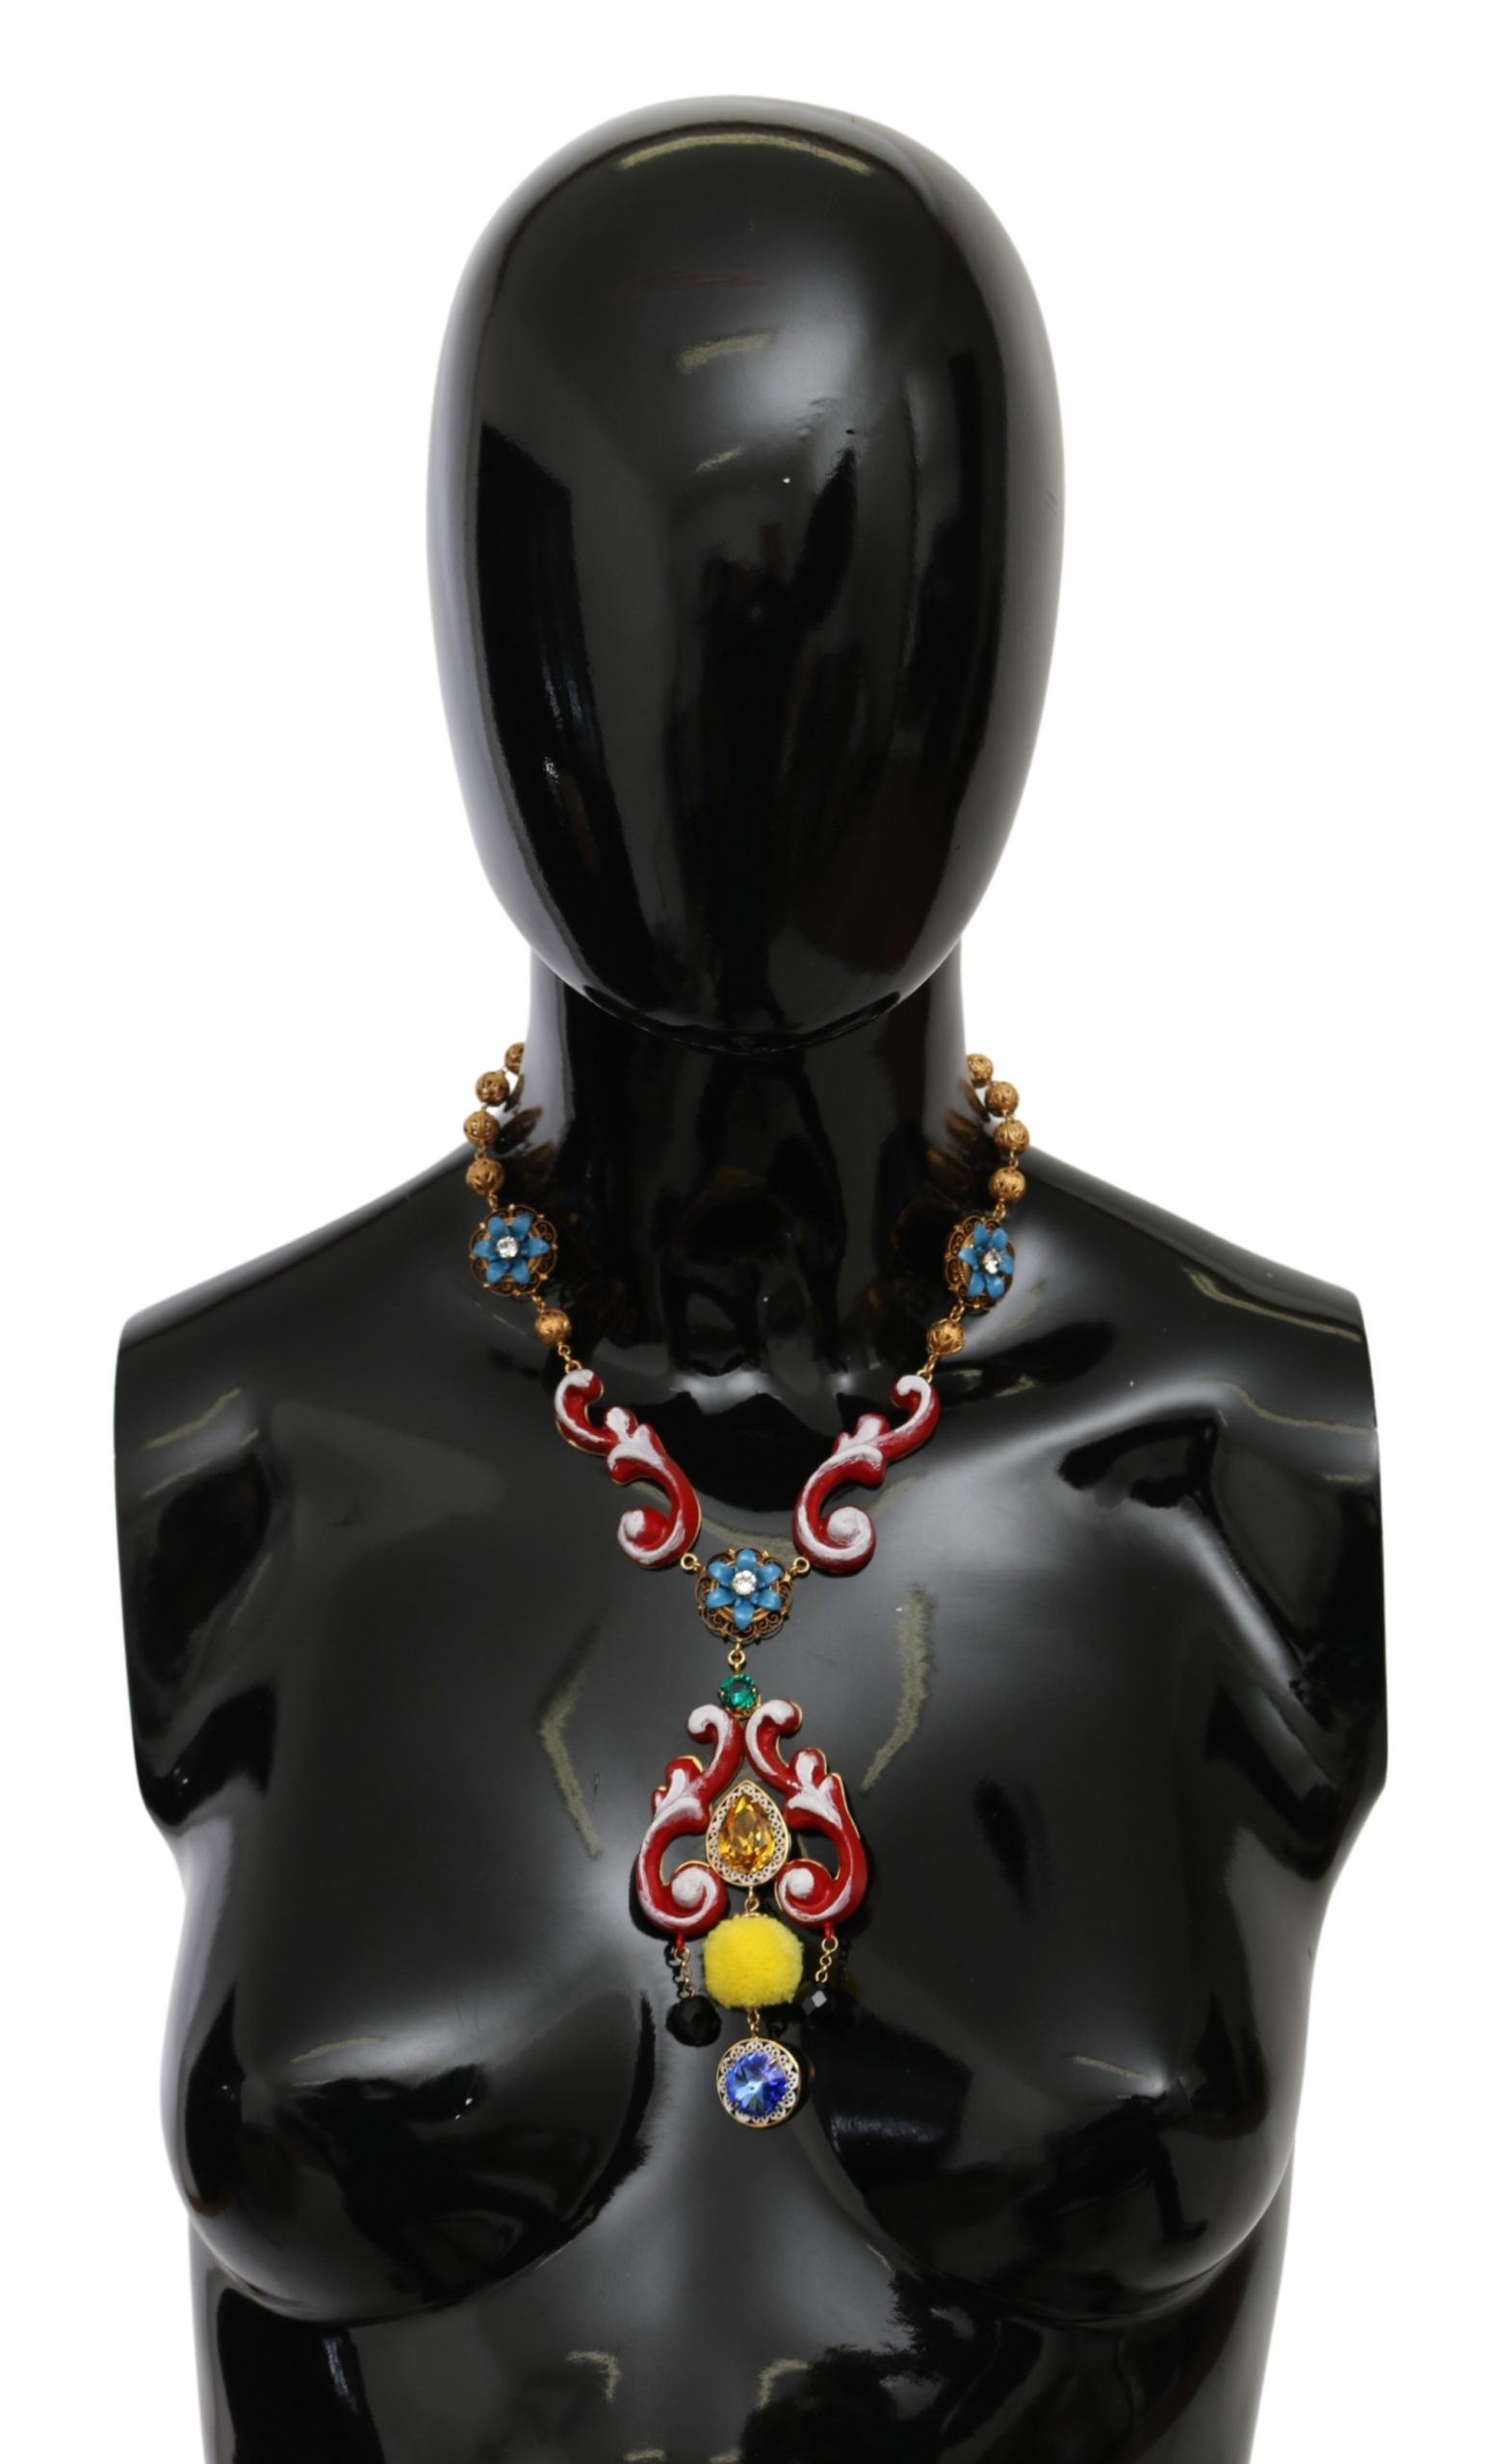 Dolce & Gabbana Women's CARRETTO Crystal Floral Necklace Gold SMY100149